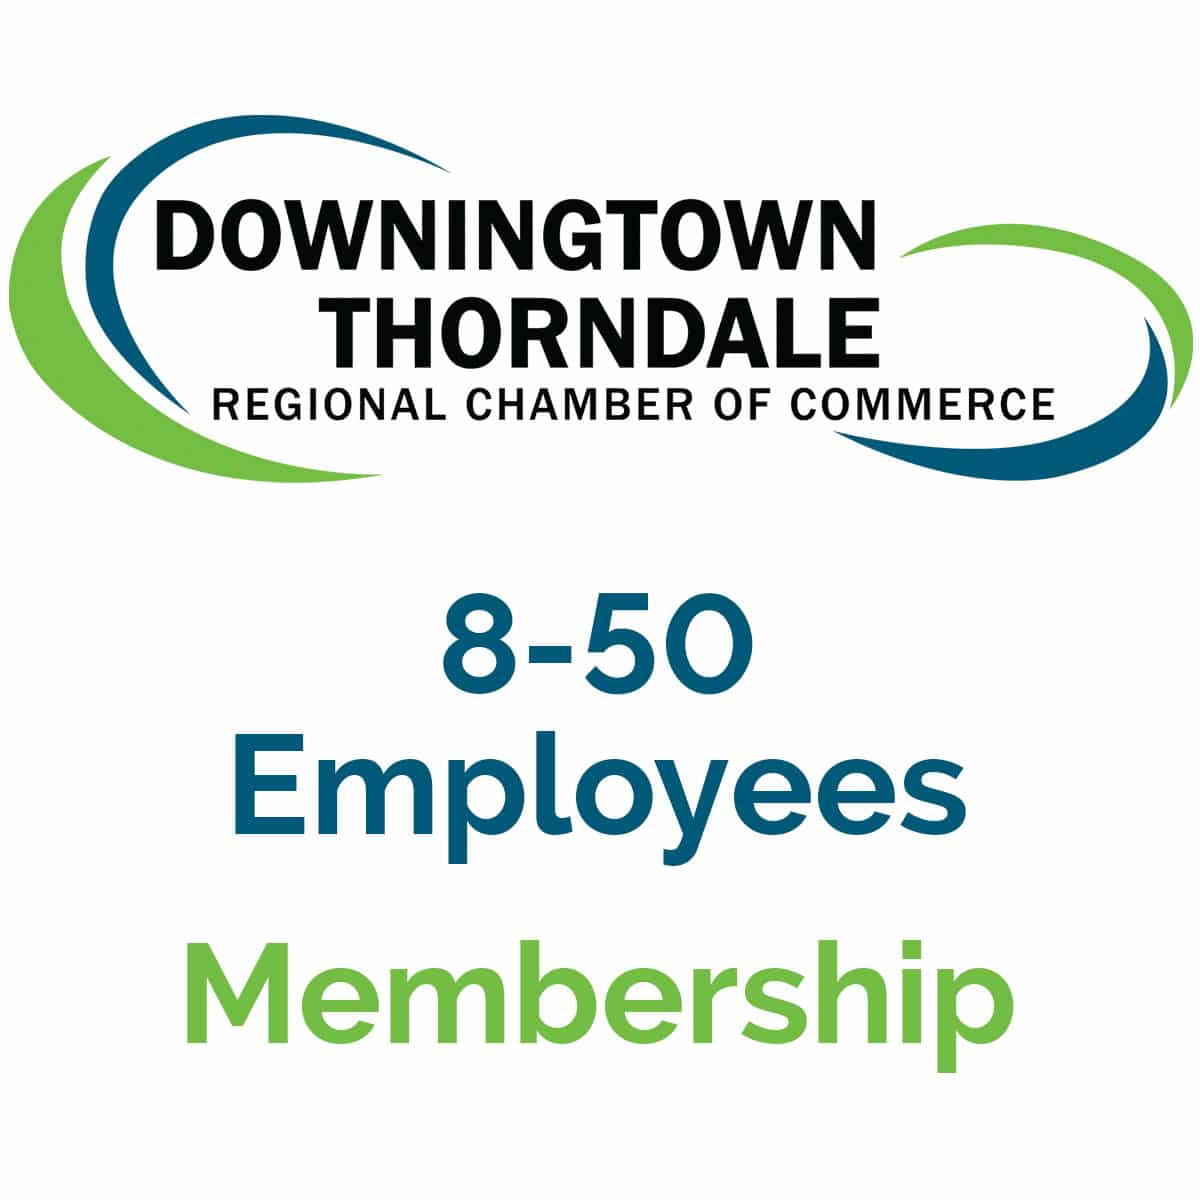 DTRCC 8-50 Employees Membership